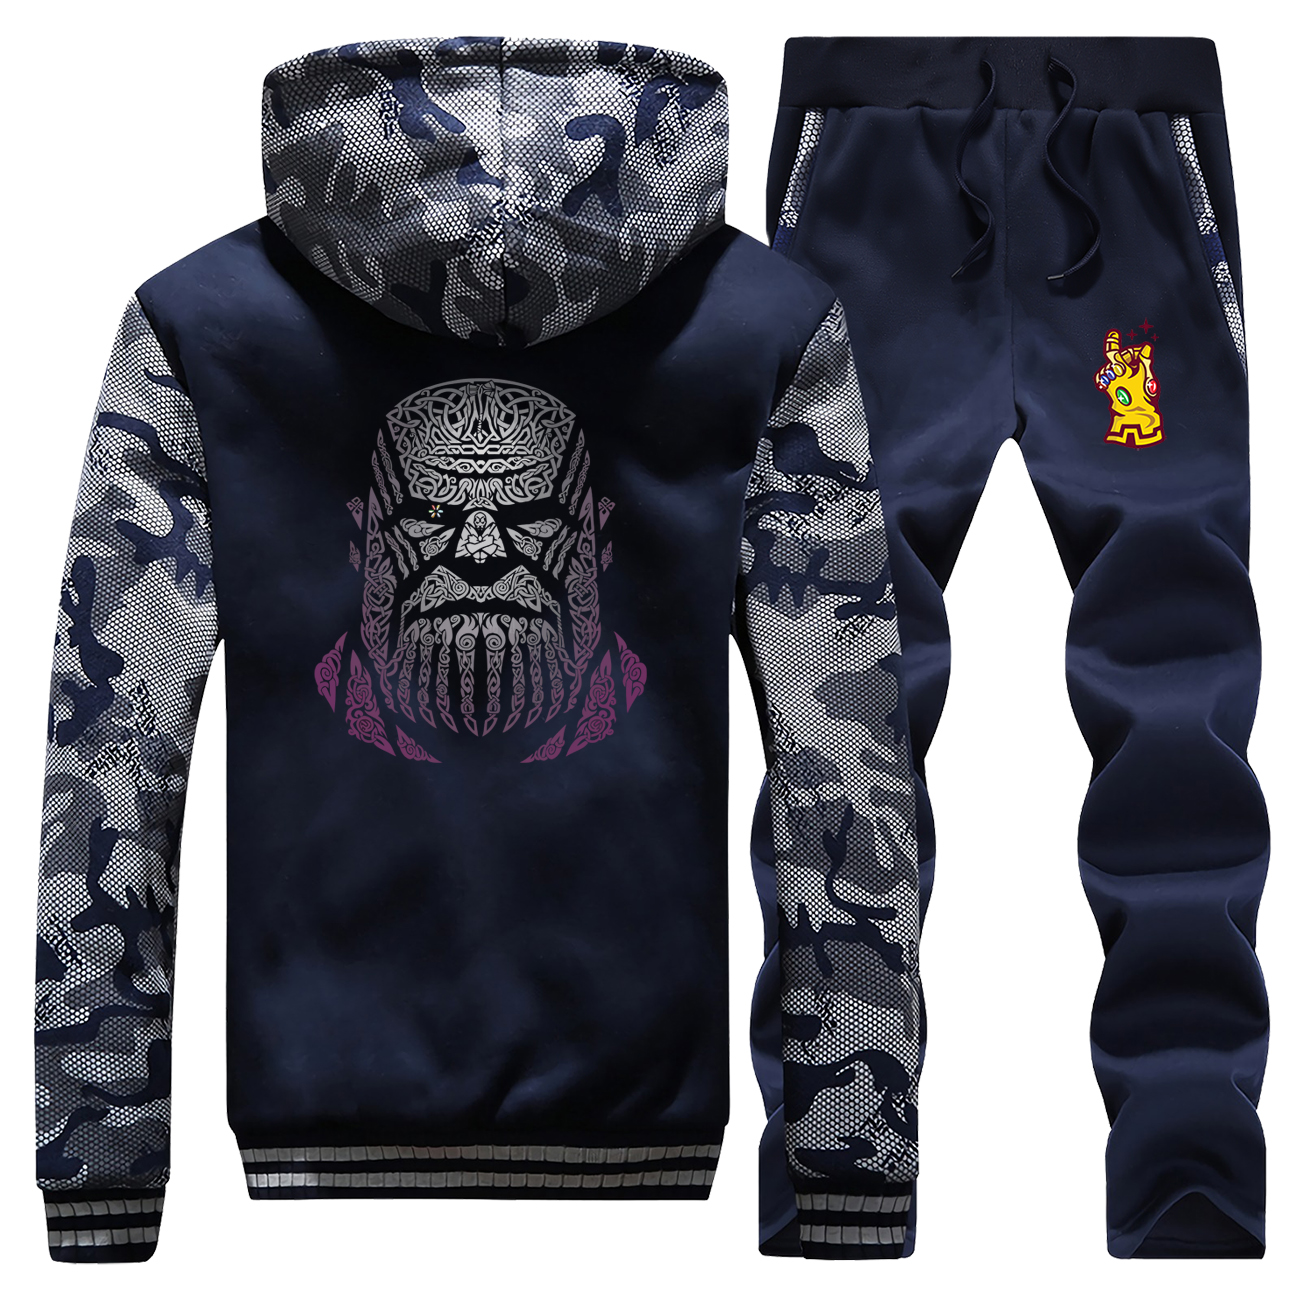 Thanos Male Hoodies+Sports Trousers 2019 Winter Thick Mens Jacket Zipper Personality Streetwear Men's Tracksuit Avengers Set 5XL